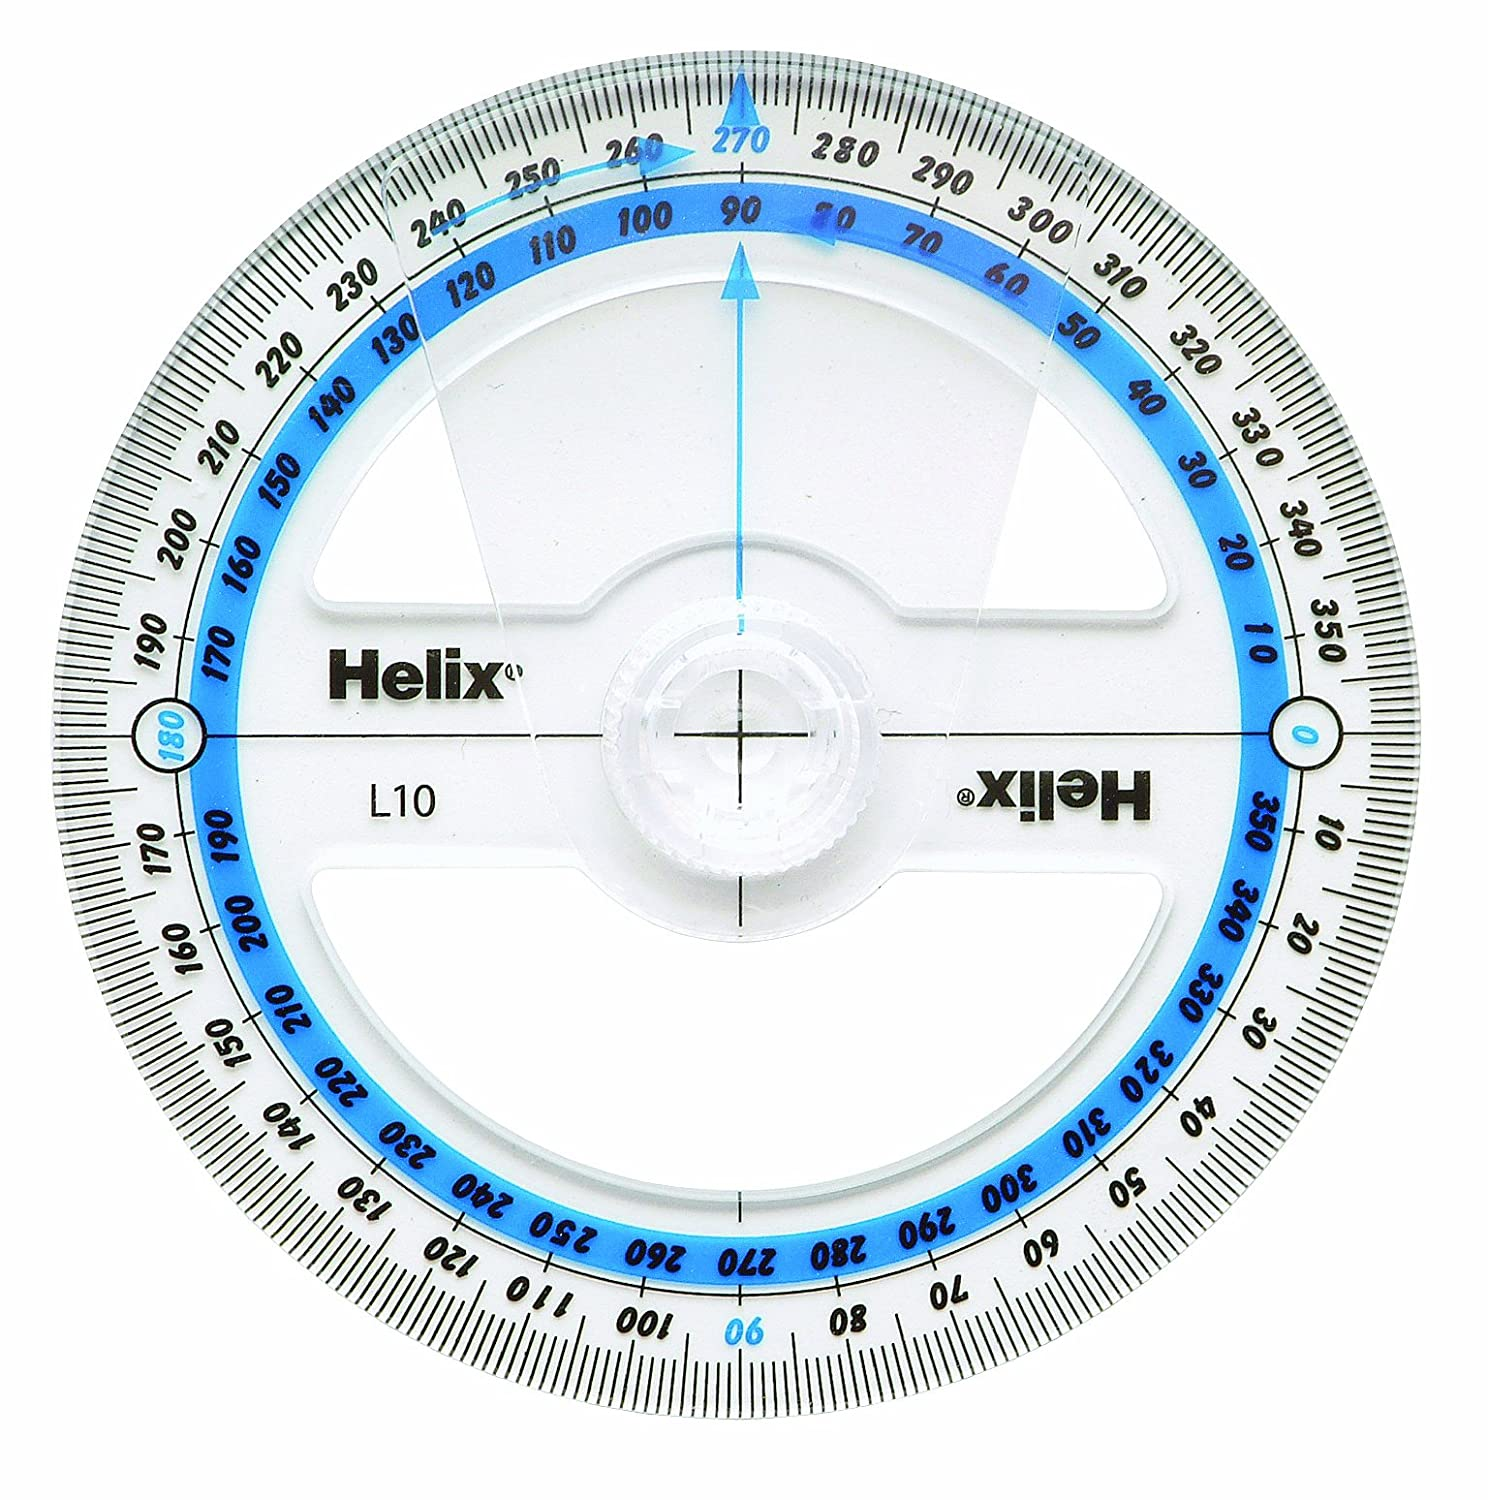 Helix 10cm/360 Degree Angle Measure L10010